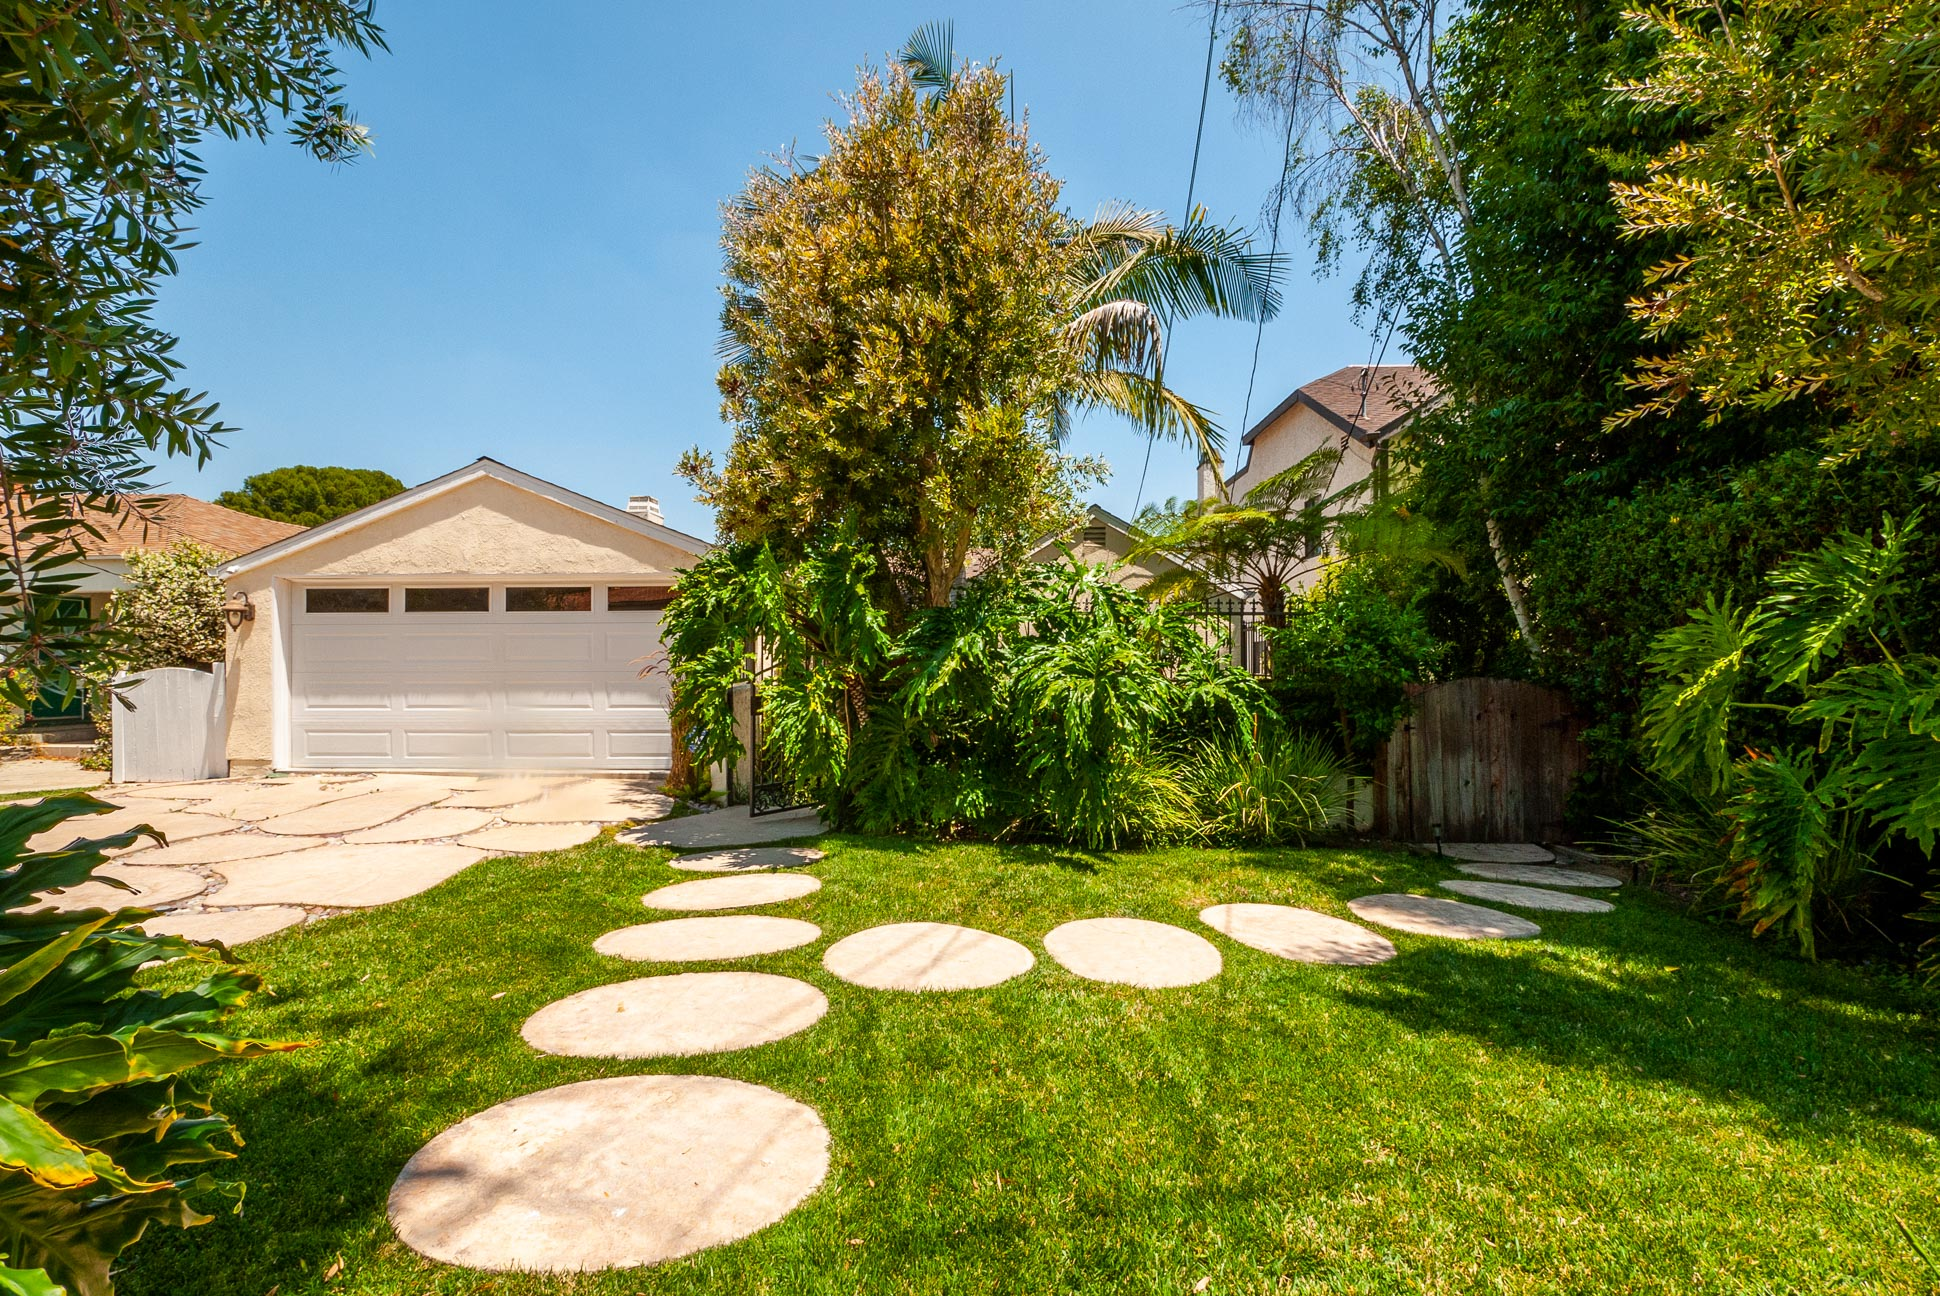 Amazing 3Bed/3Bath Home + Private Guest House! Prime Sherman Oaks Location - South of Ventura Blvd!